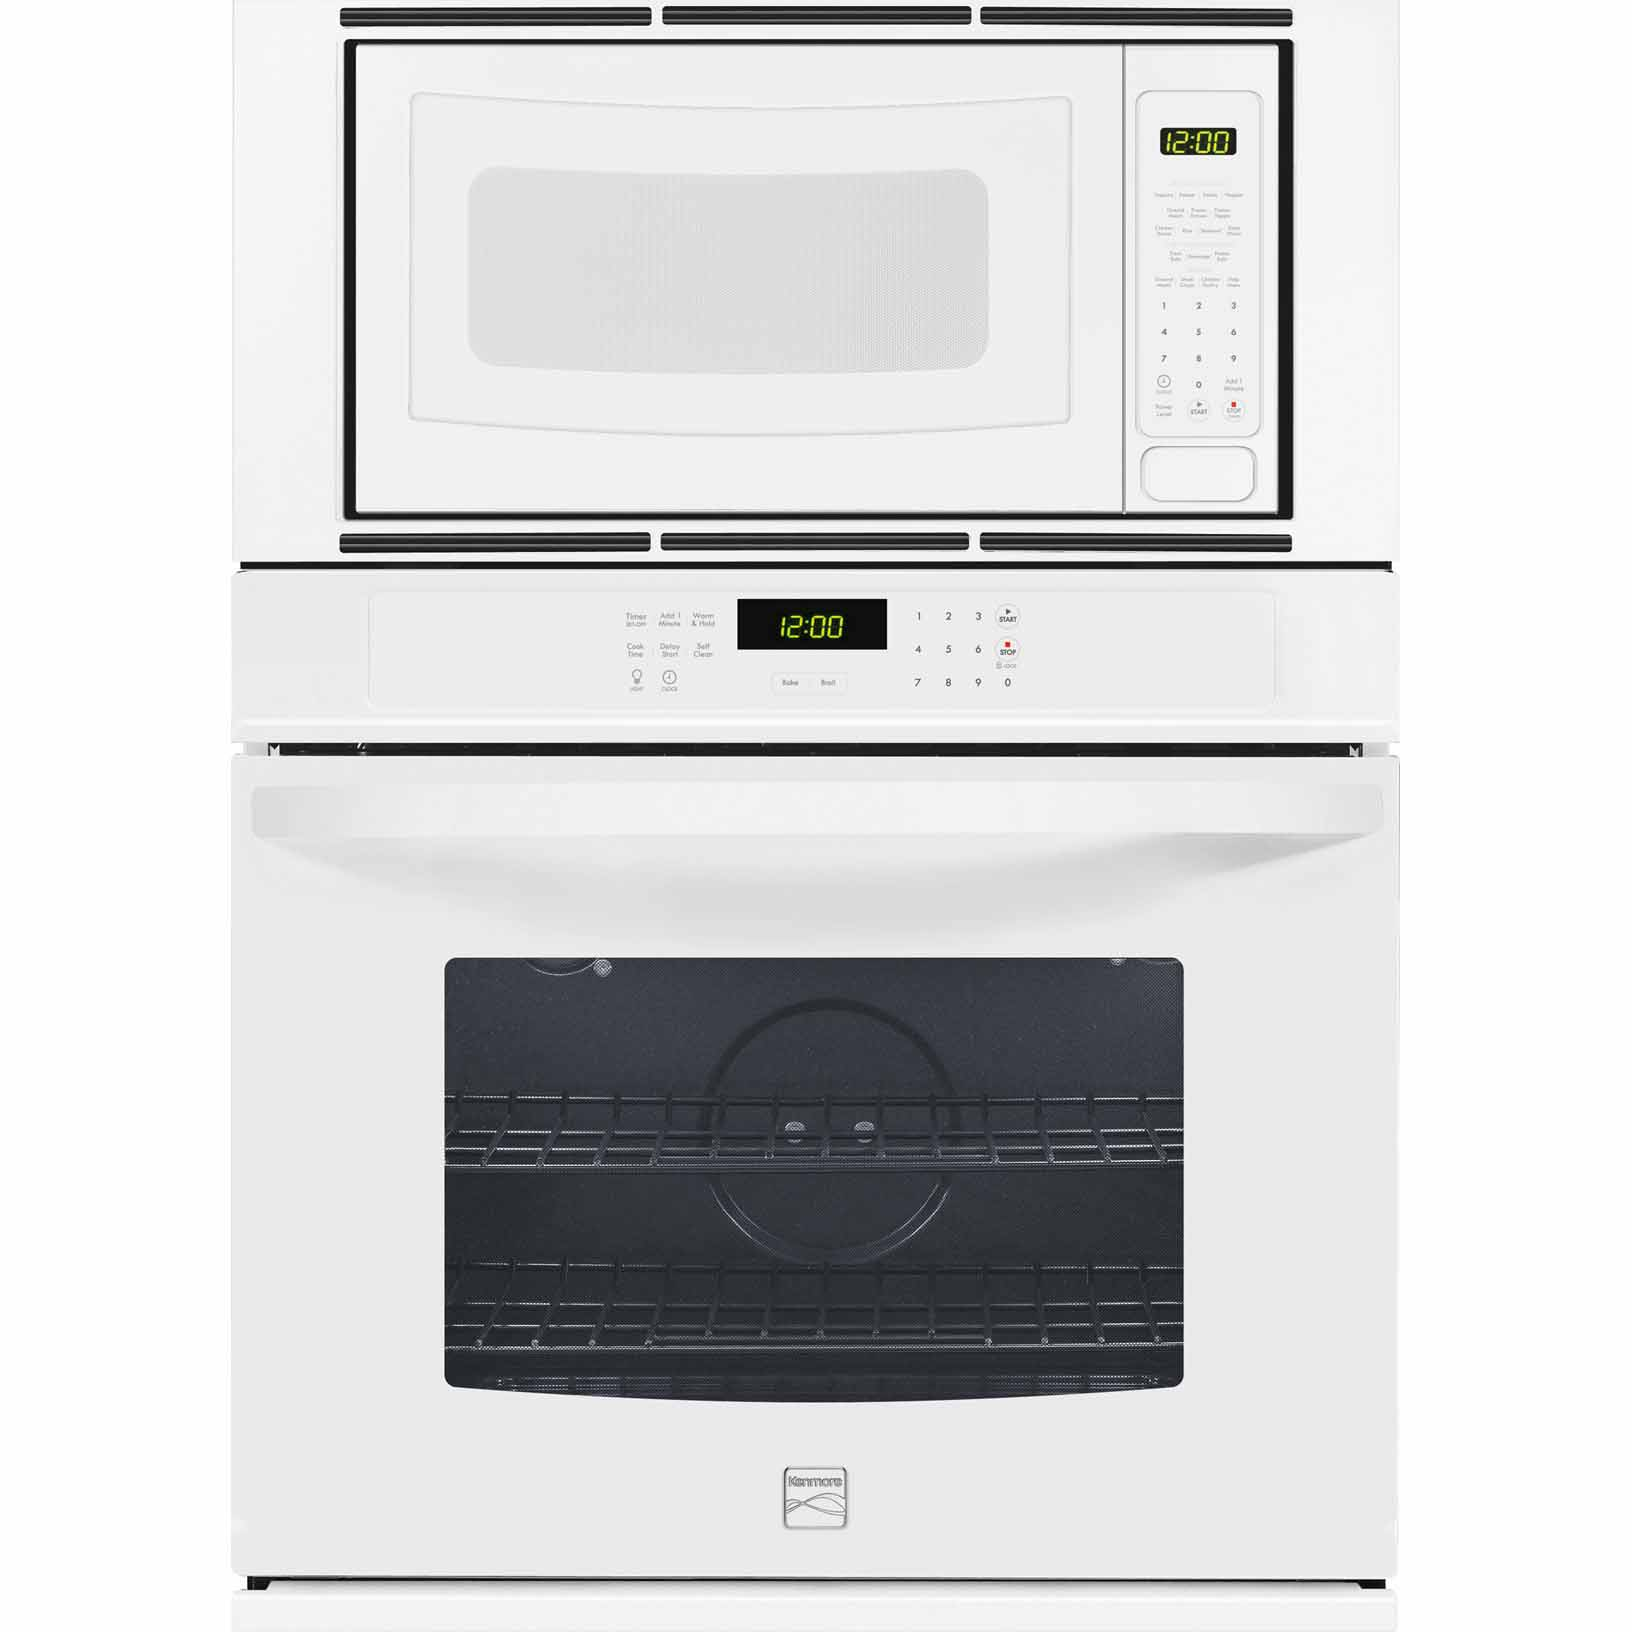 Kenmore 49602 27 Electric Combination Wall Oven - White